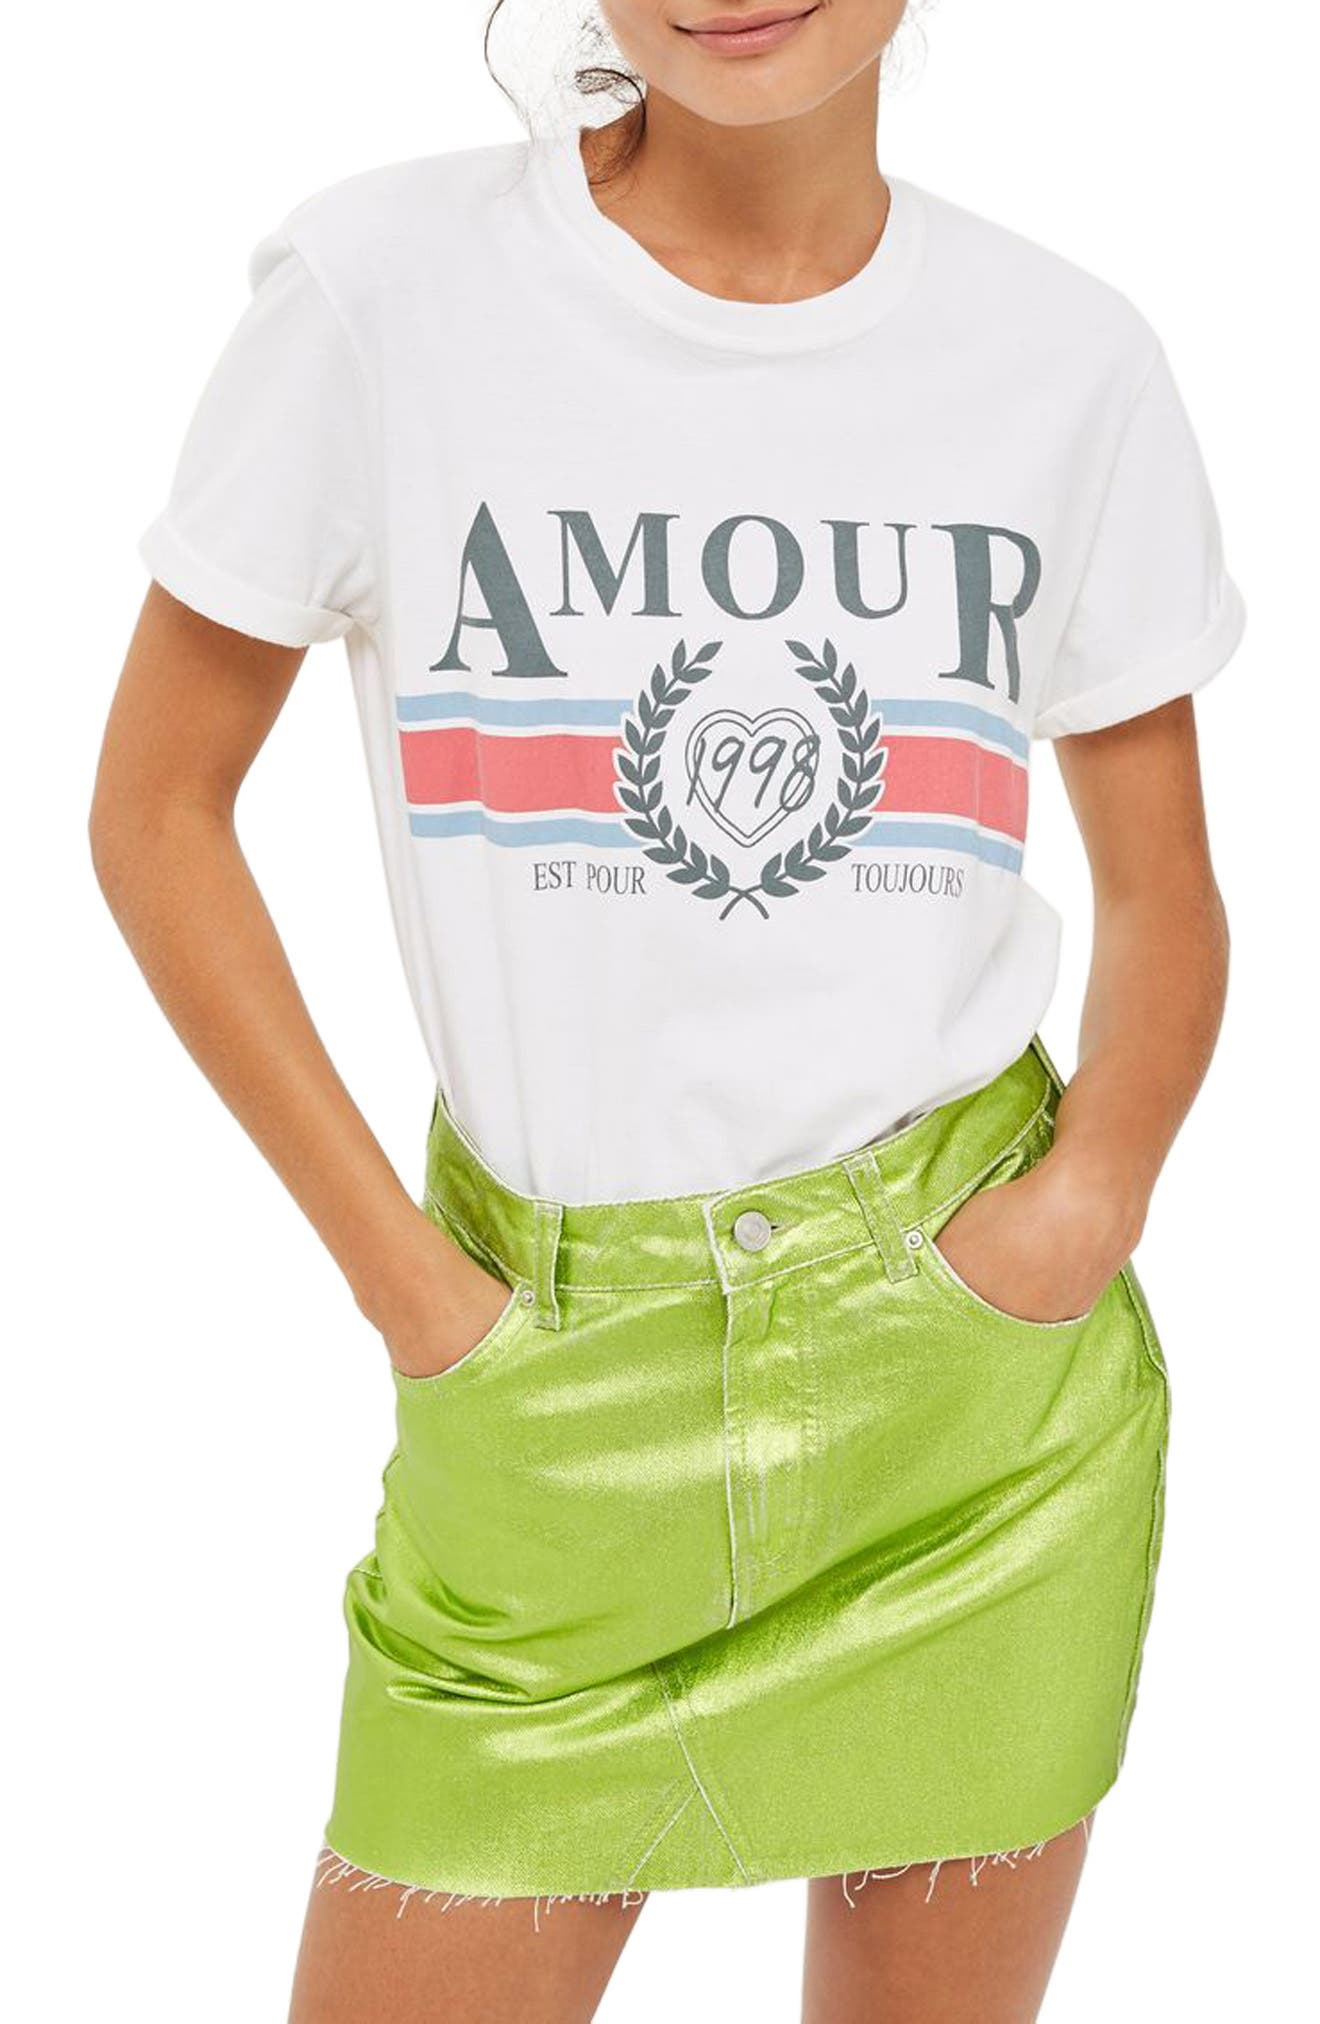 Topshop Amour Graphic Tee